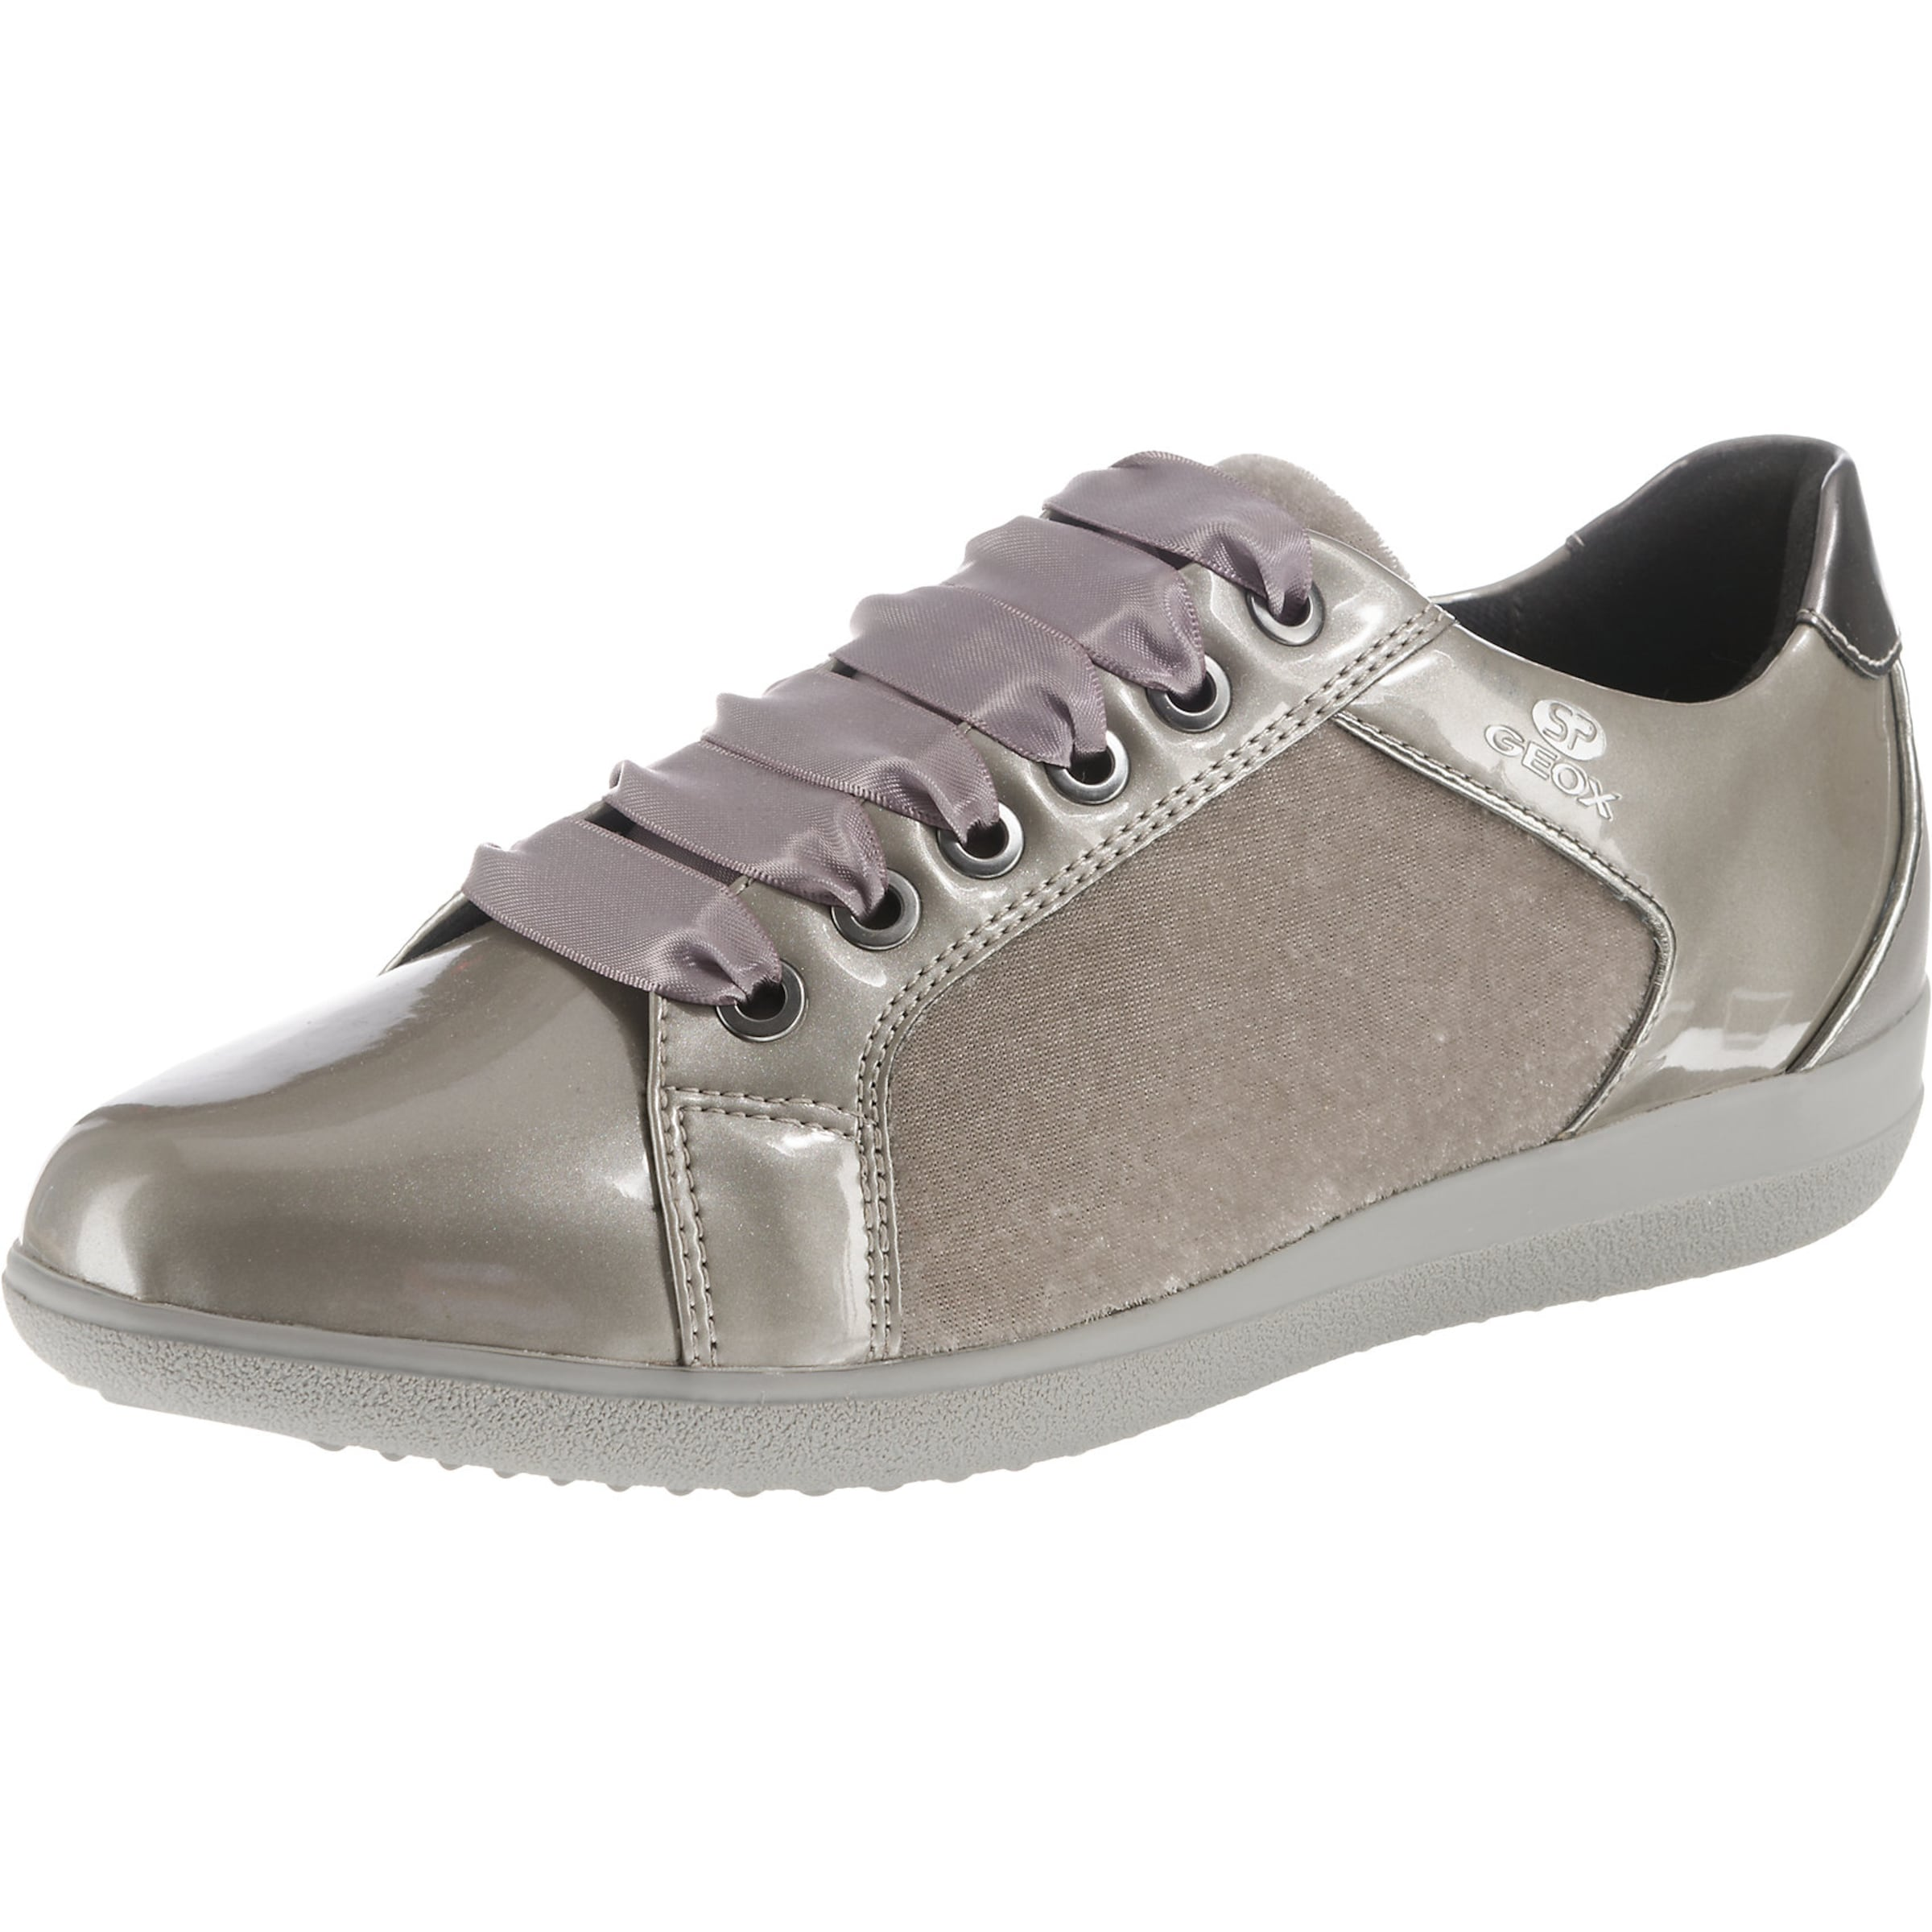 Geox In Geox Sneakers Sneakers 'nihal' Taupe 5R4AcjSq3L